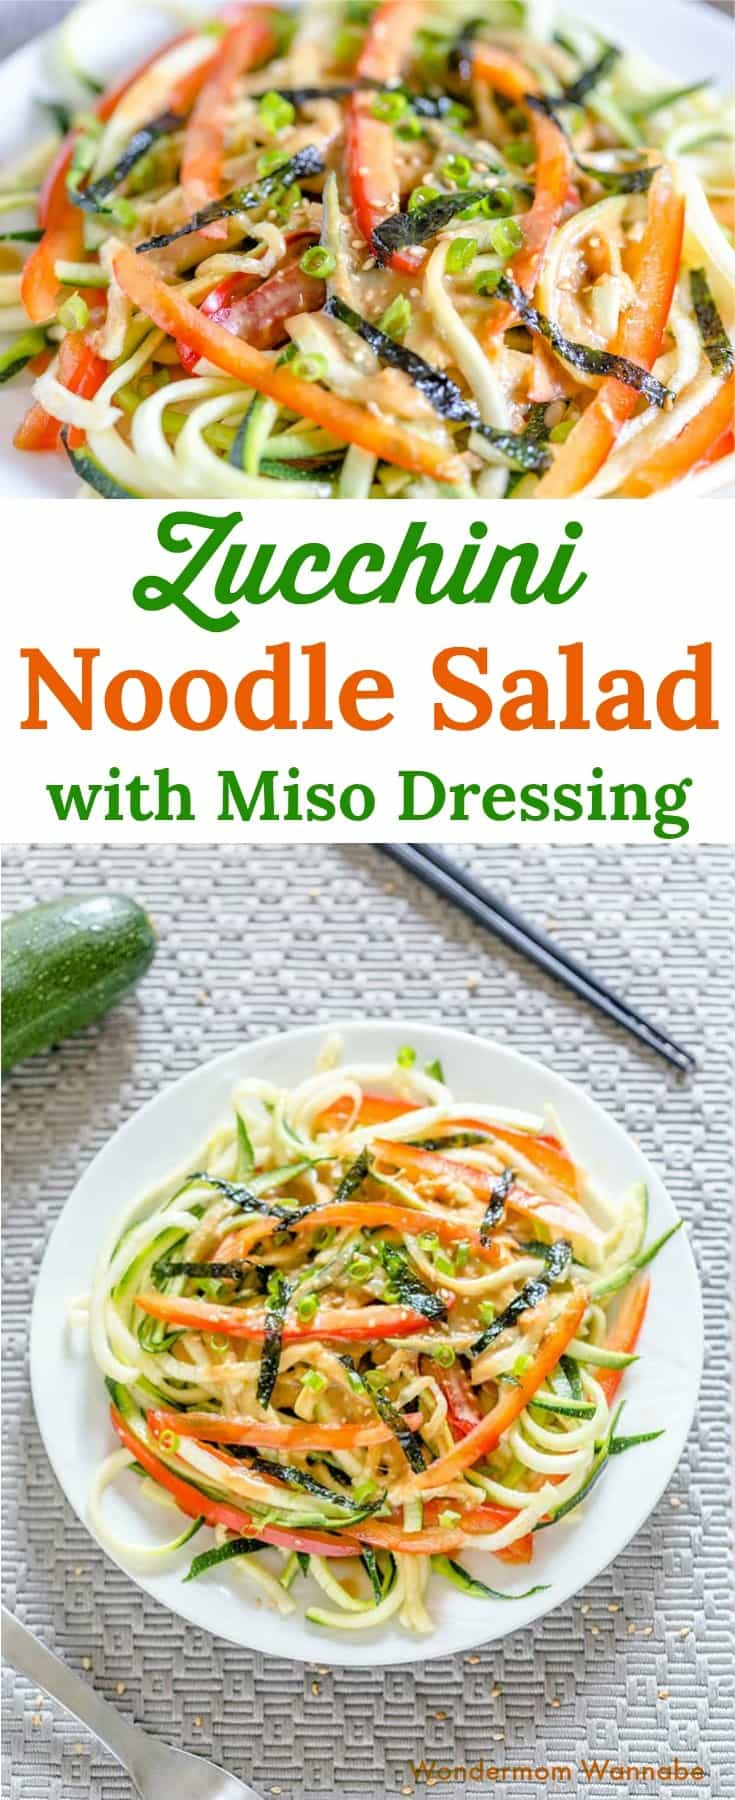 So excited to have discovered zoodles! This zucchini noodle salad with miso dressing is so delicious and far more beautiful and nutritious than a pasta dish.